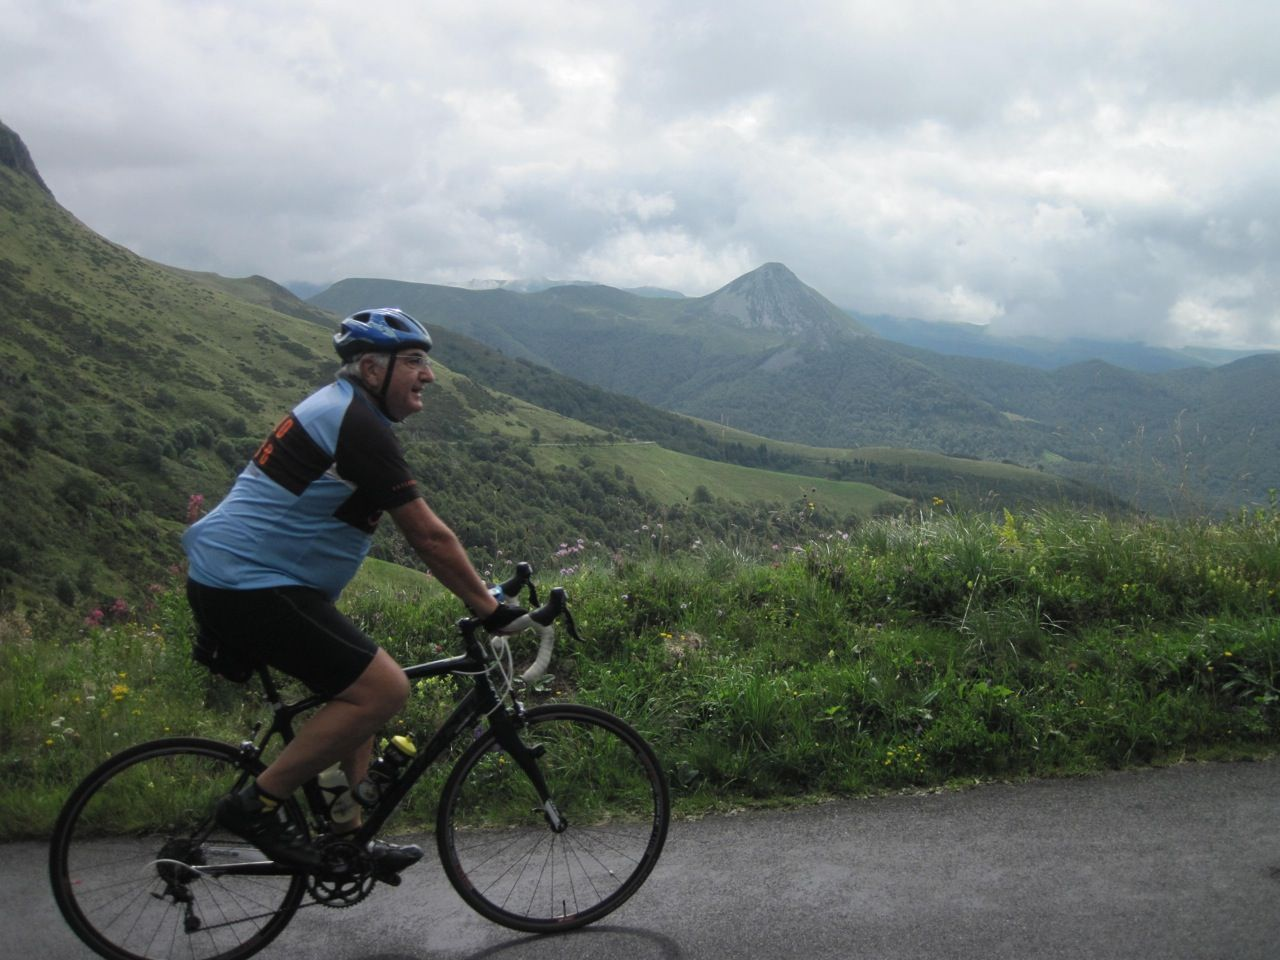 _Staff.348.18307.jpg - France - Haute Dordogne - Guided Road Cycling Holiday - Road Cycling